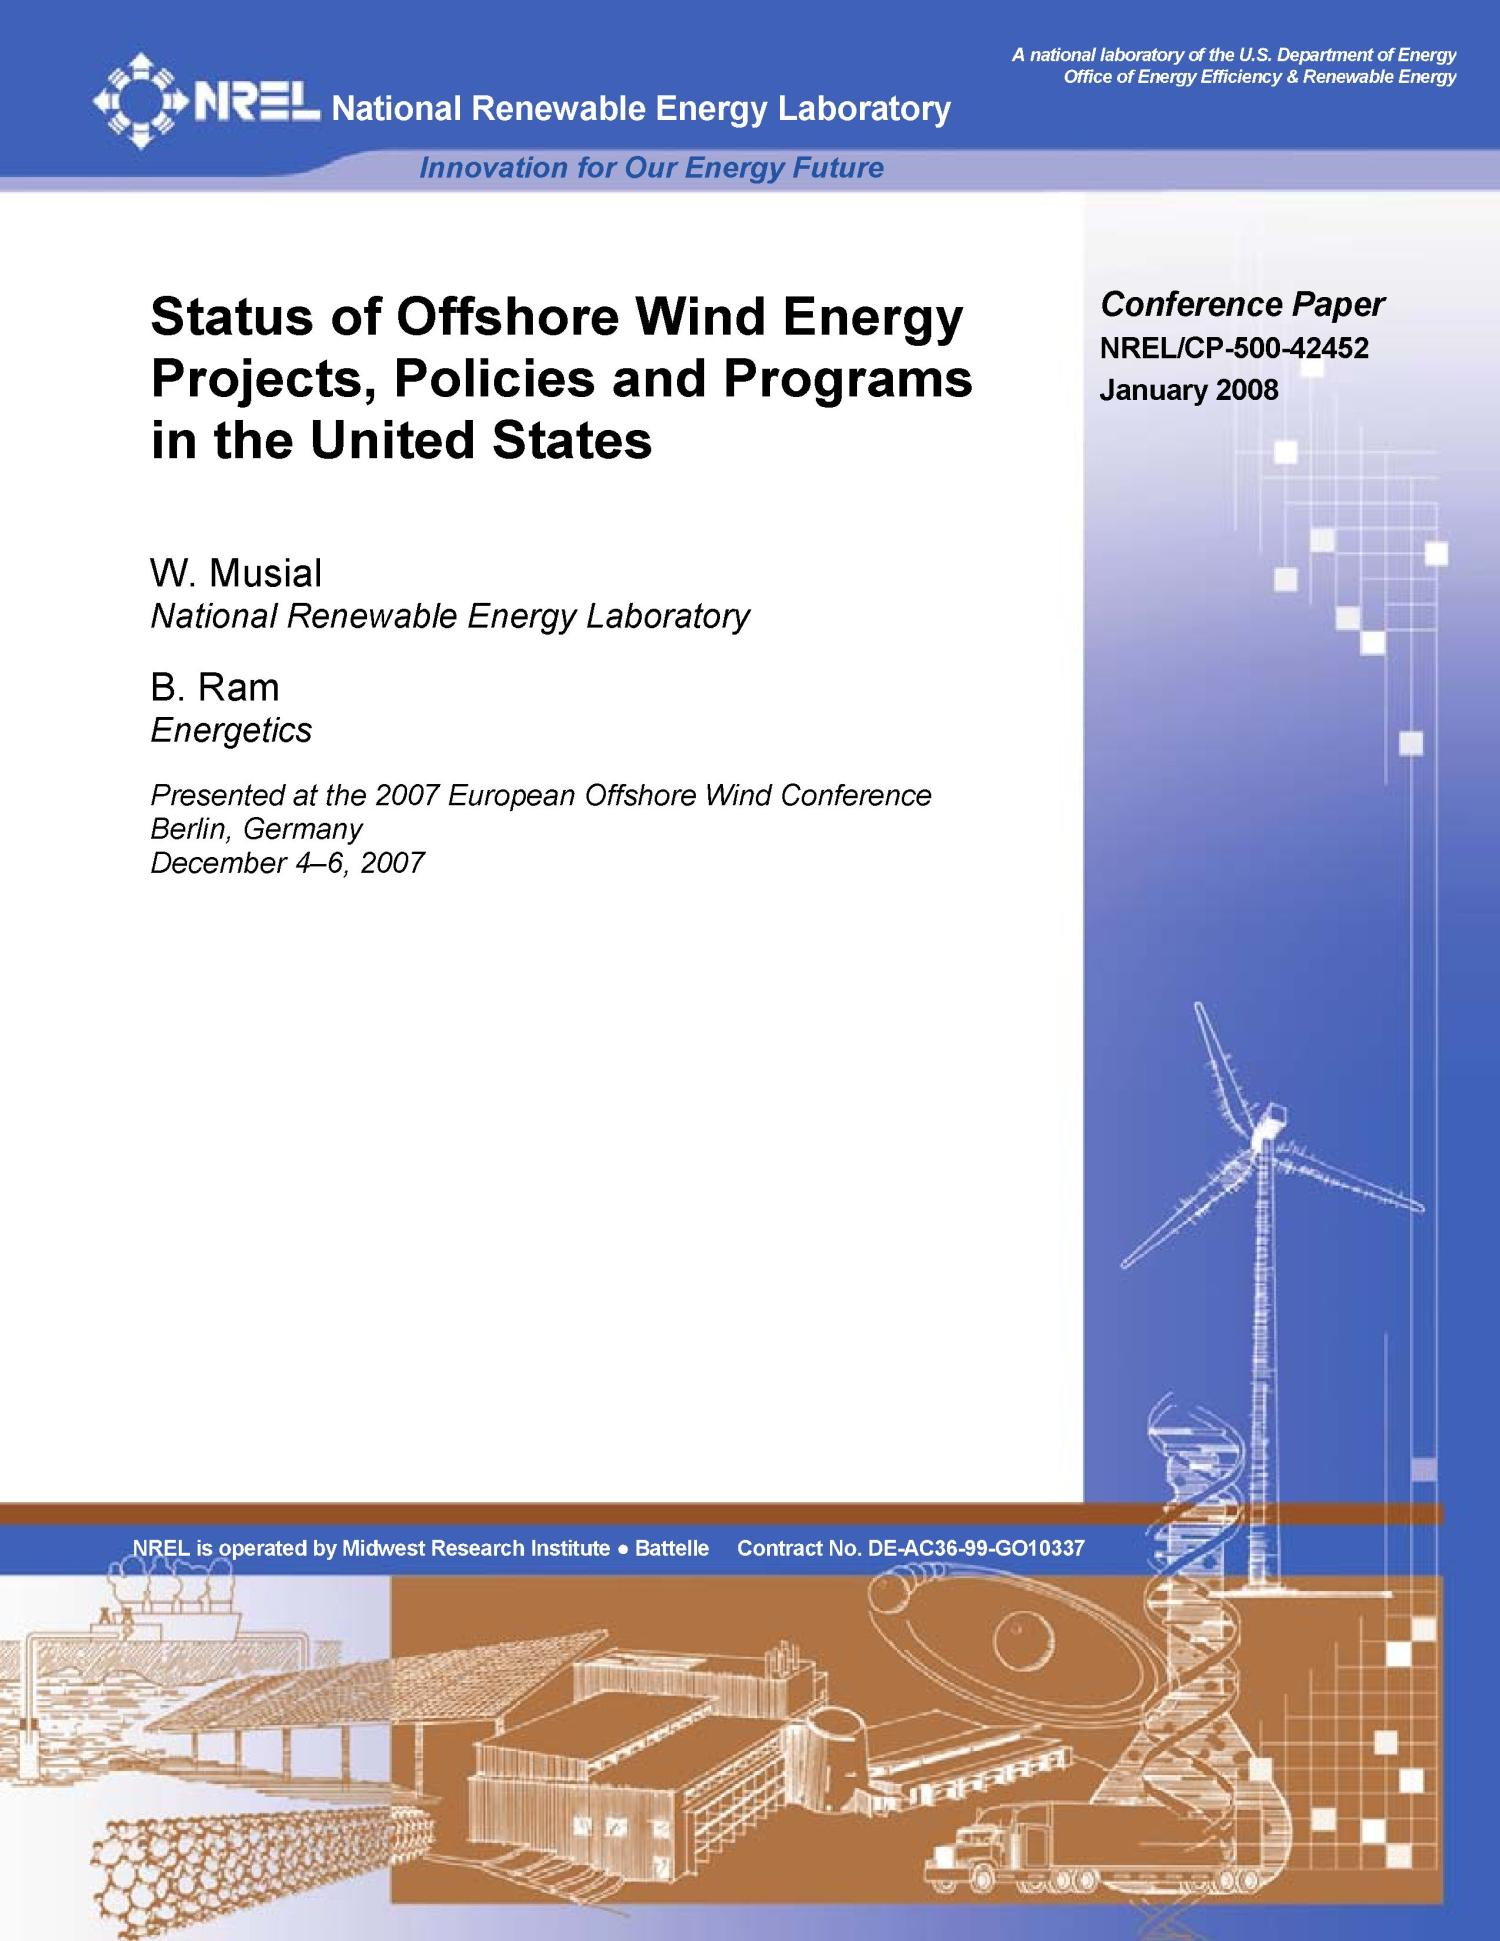 Status of Offshore Wind Energy Projects, Policies and Programs in the United States                                                                                                      [Sequence #]: 1 of 14